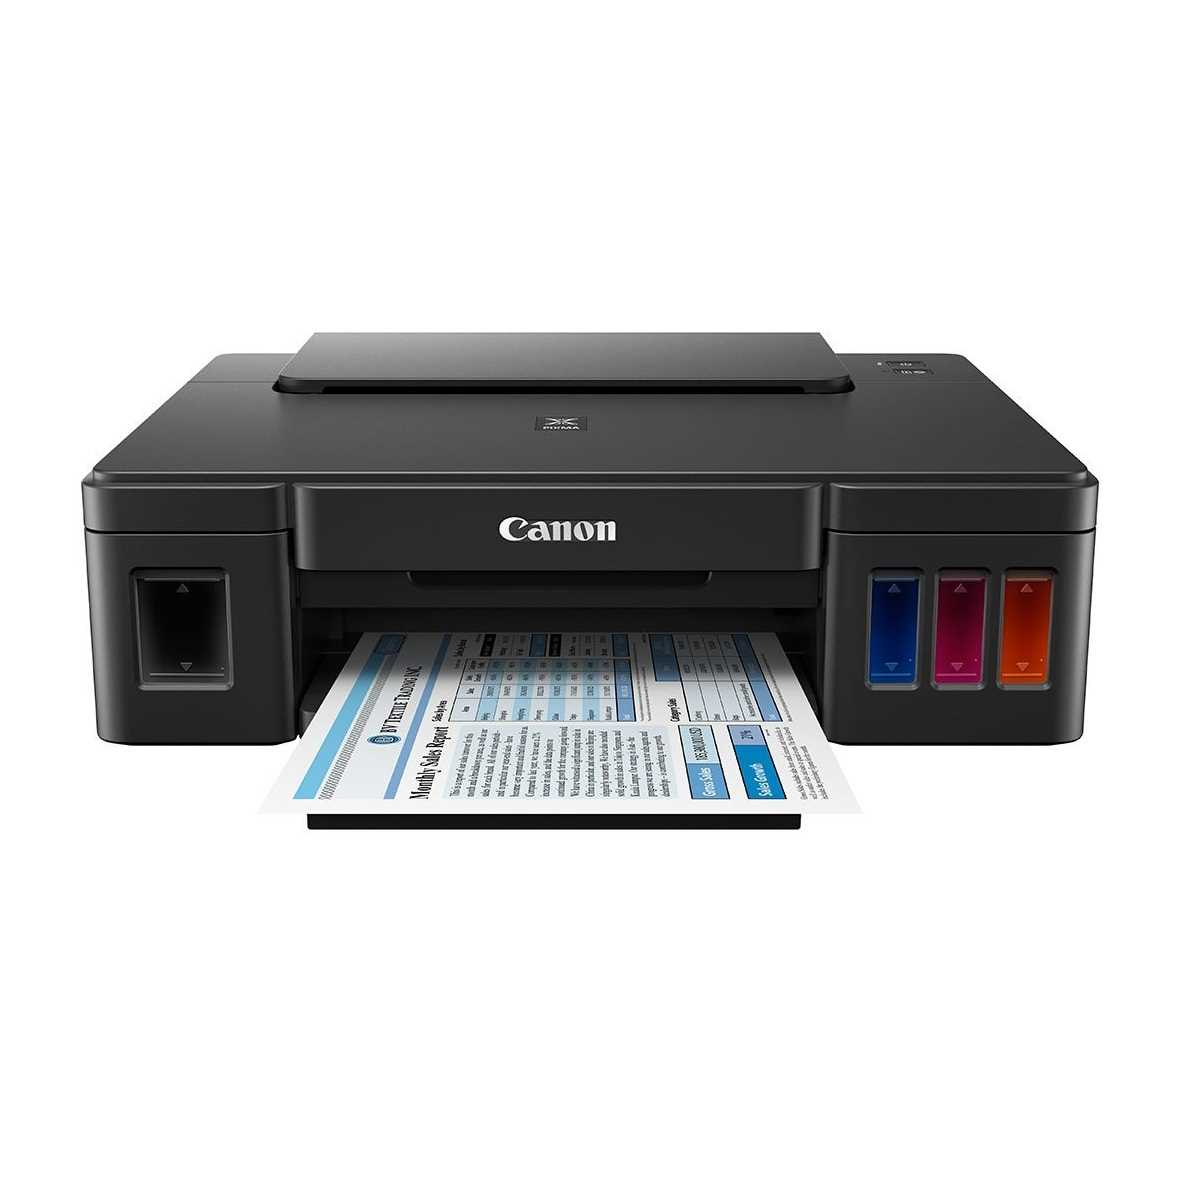 Canon Pixma G1000 Inkjet Single Function Printer